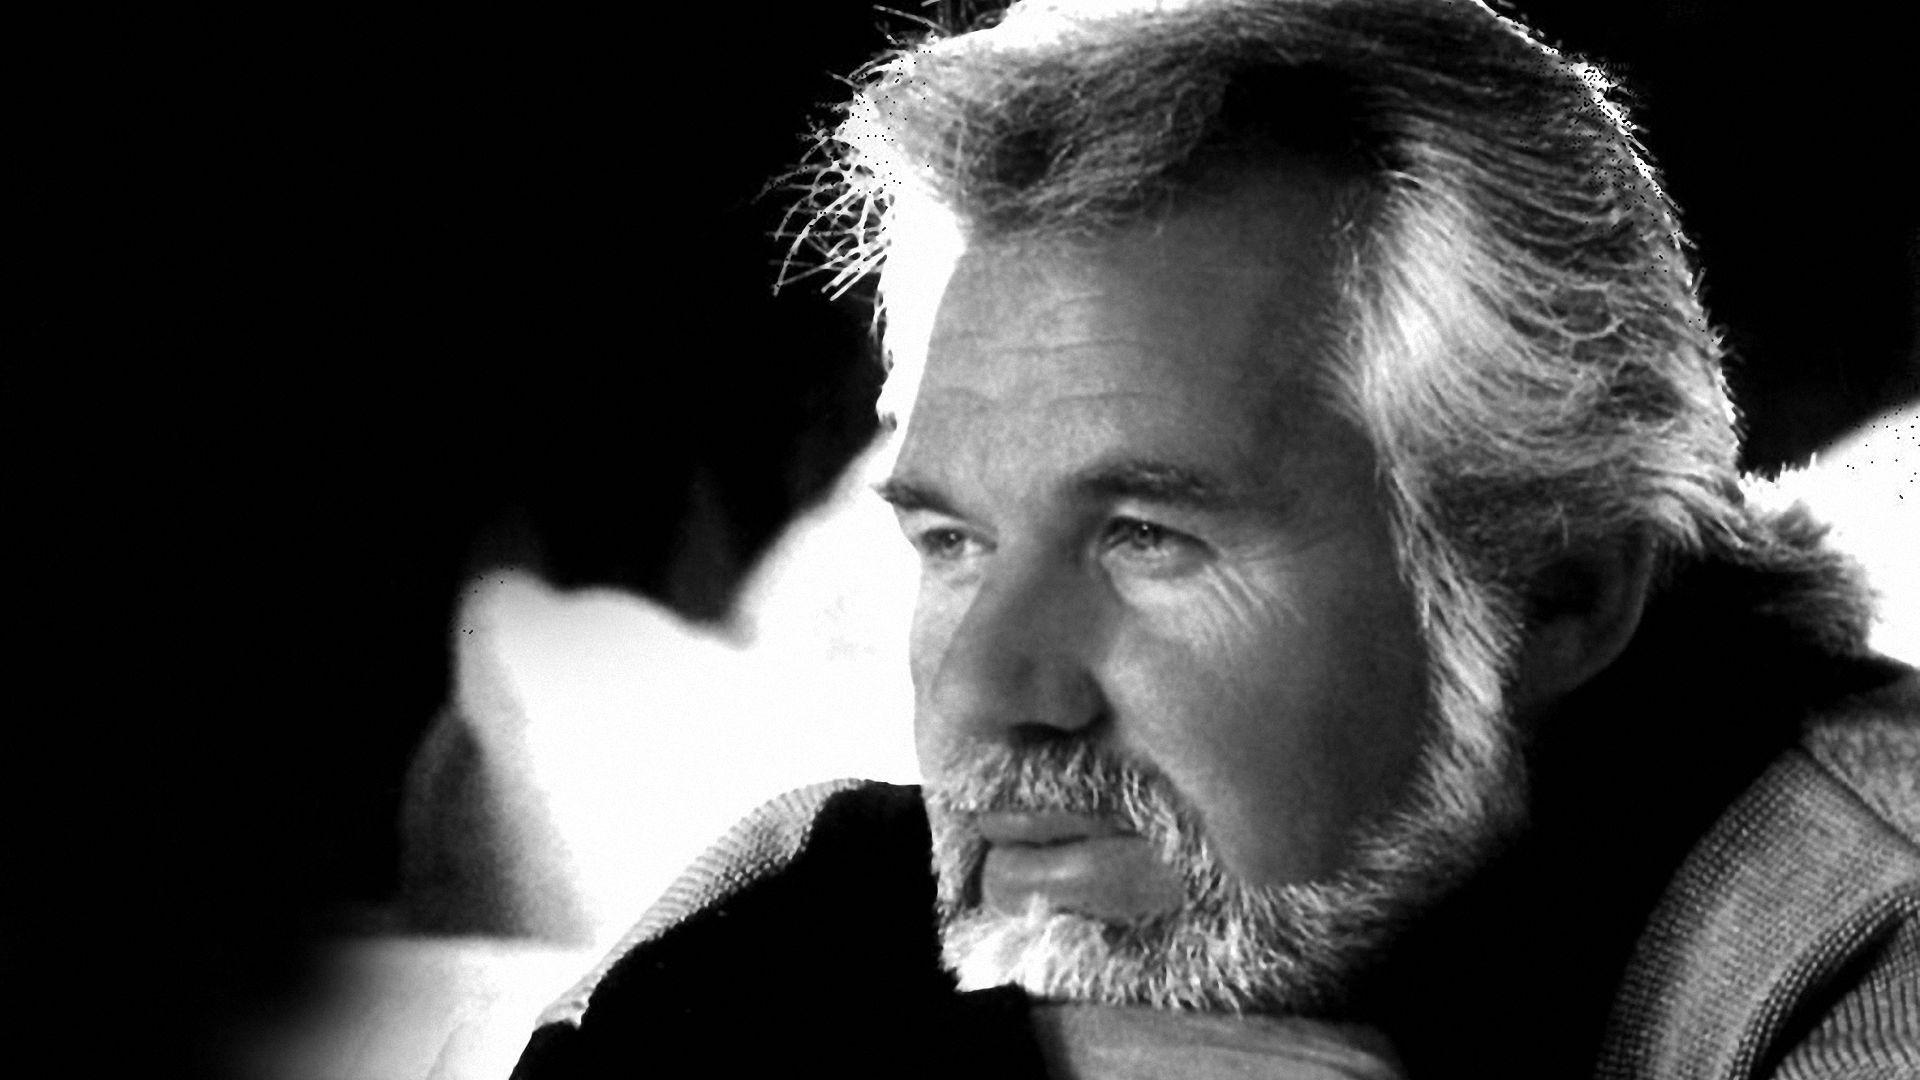 Sterfdag Kenny Rodgers (1938-2020)